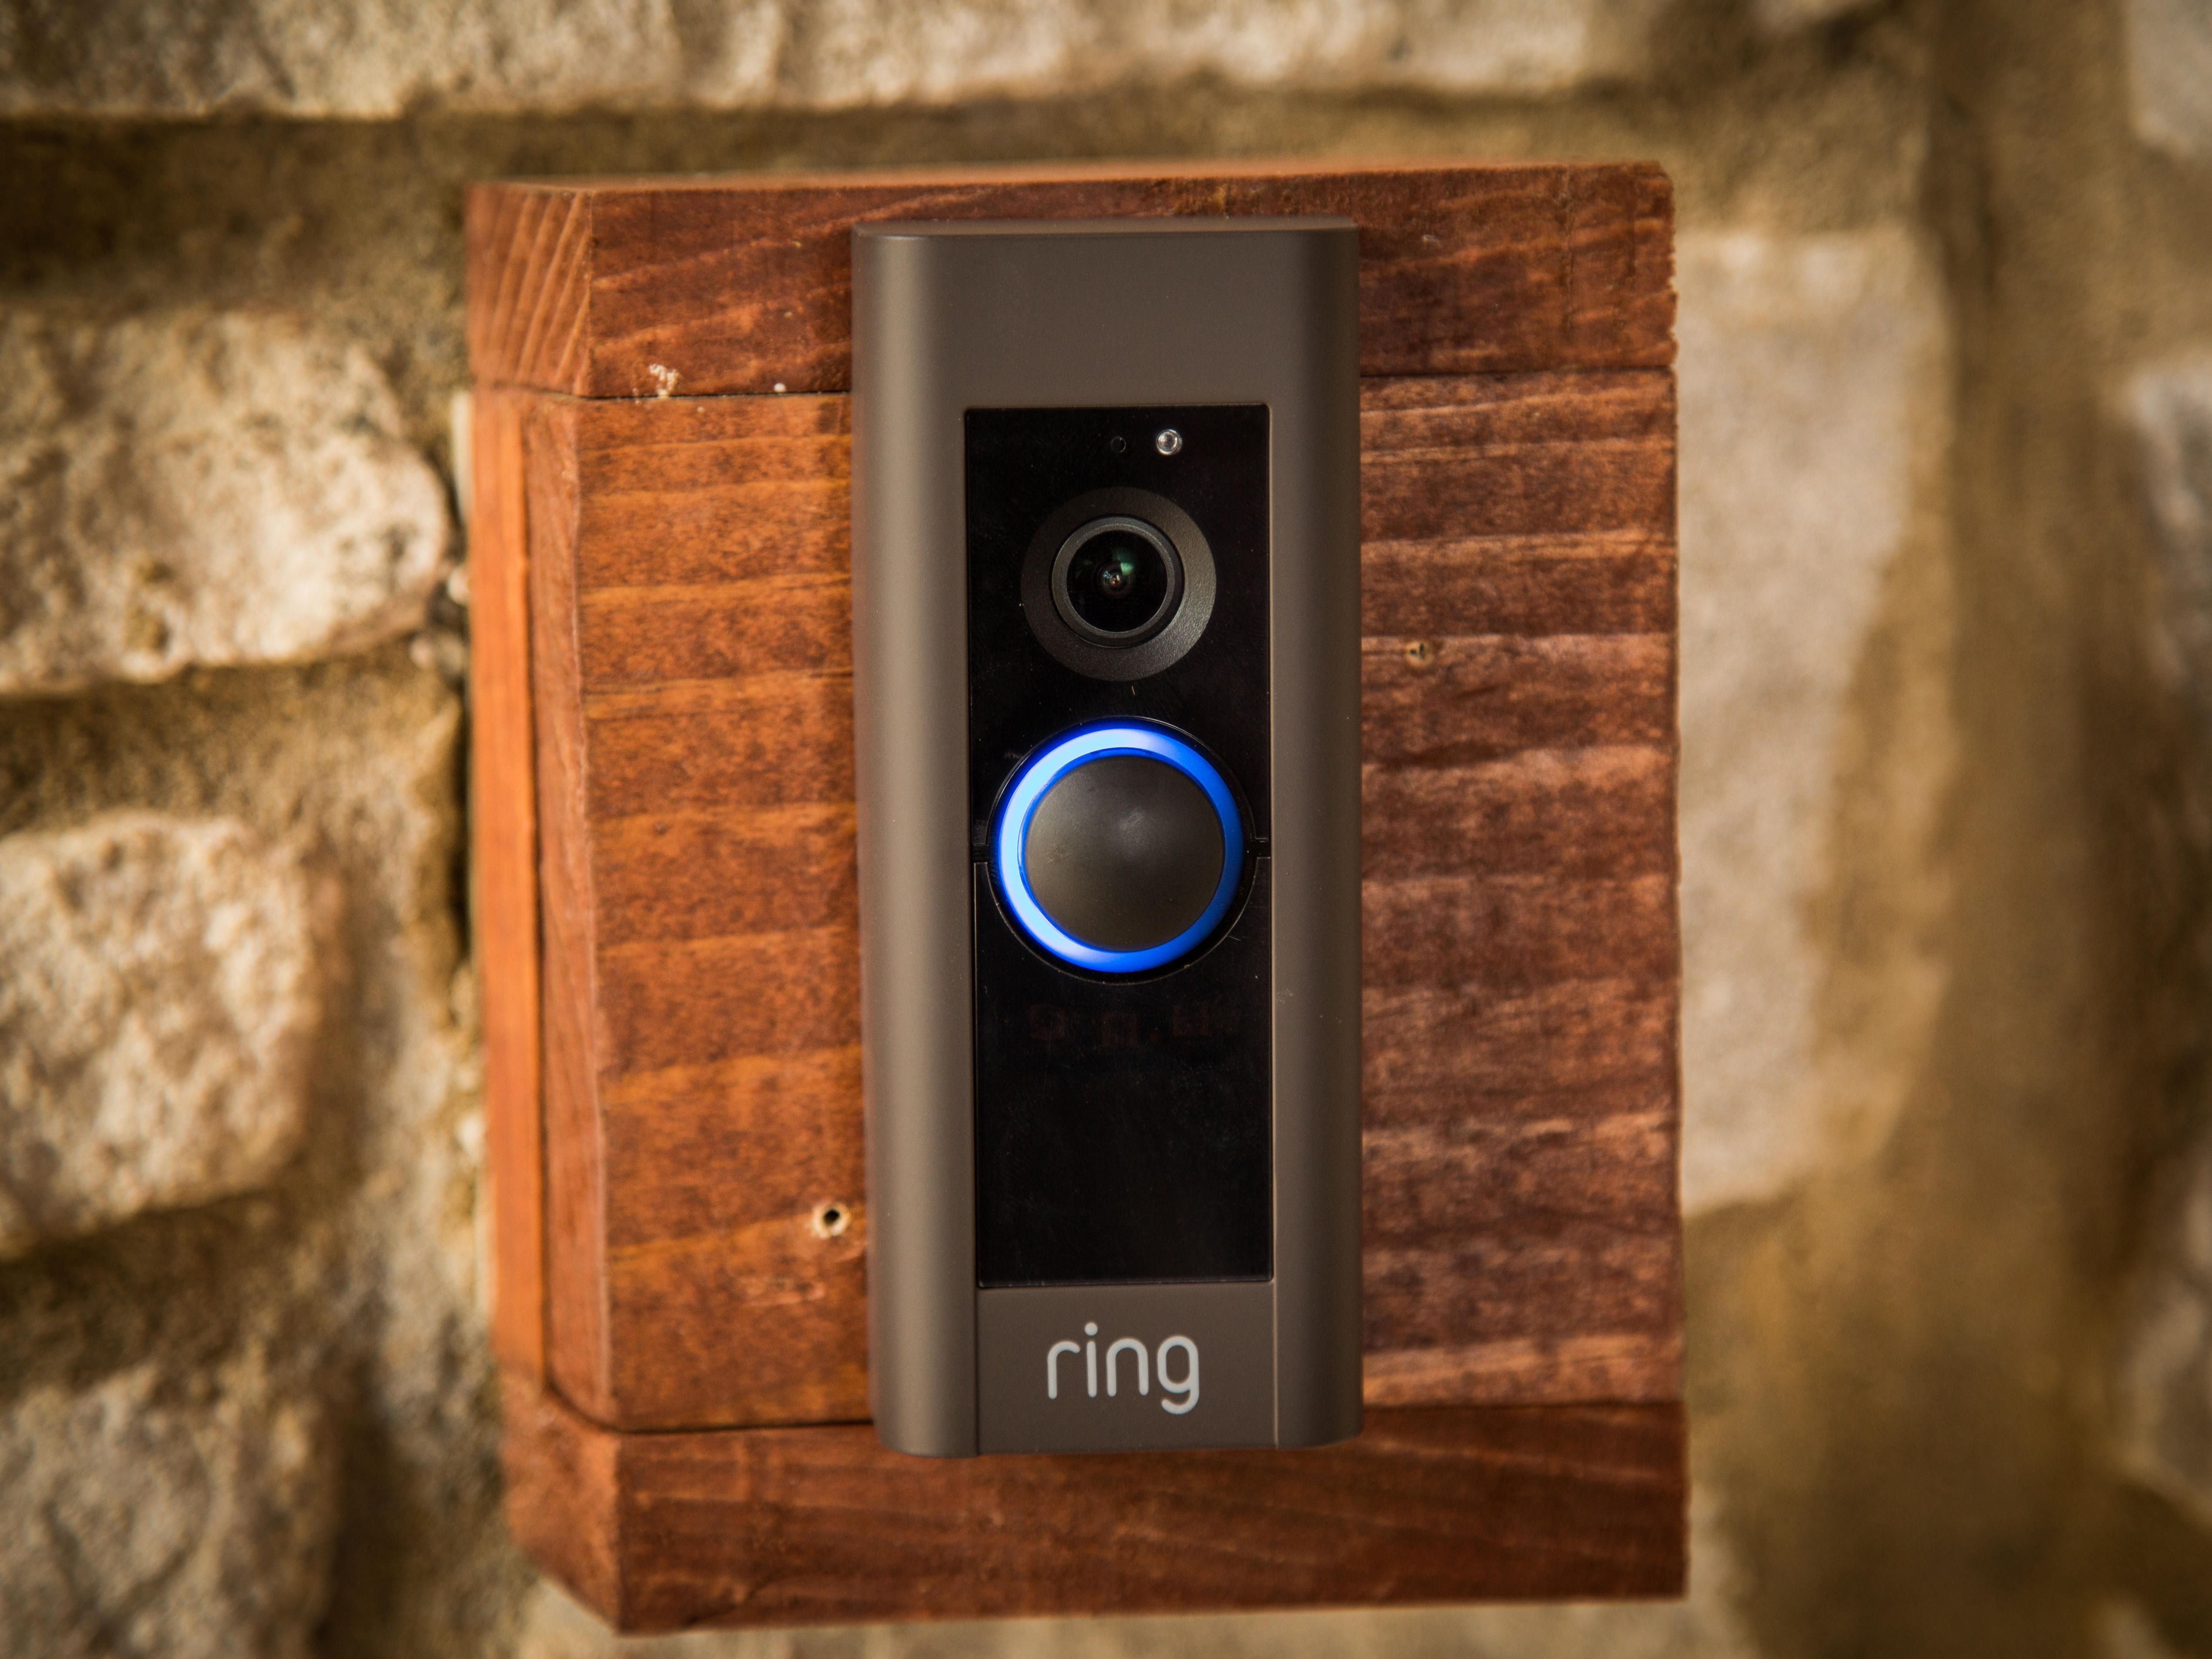 August View Vs Ring Video Doorbell 2 Ring Video Doorbell Smart Doorbell Doorbell